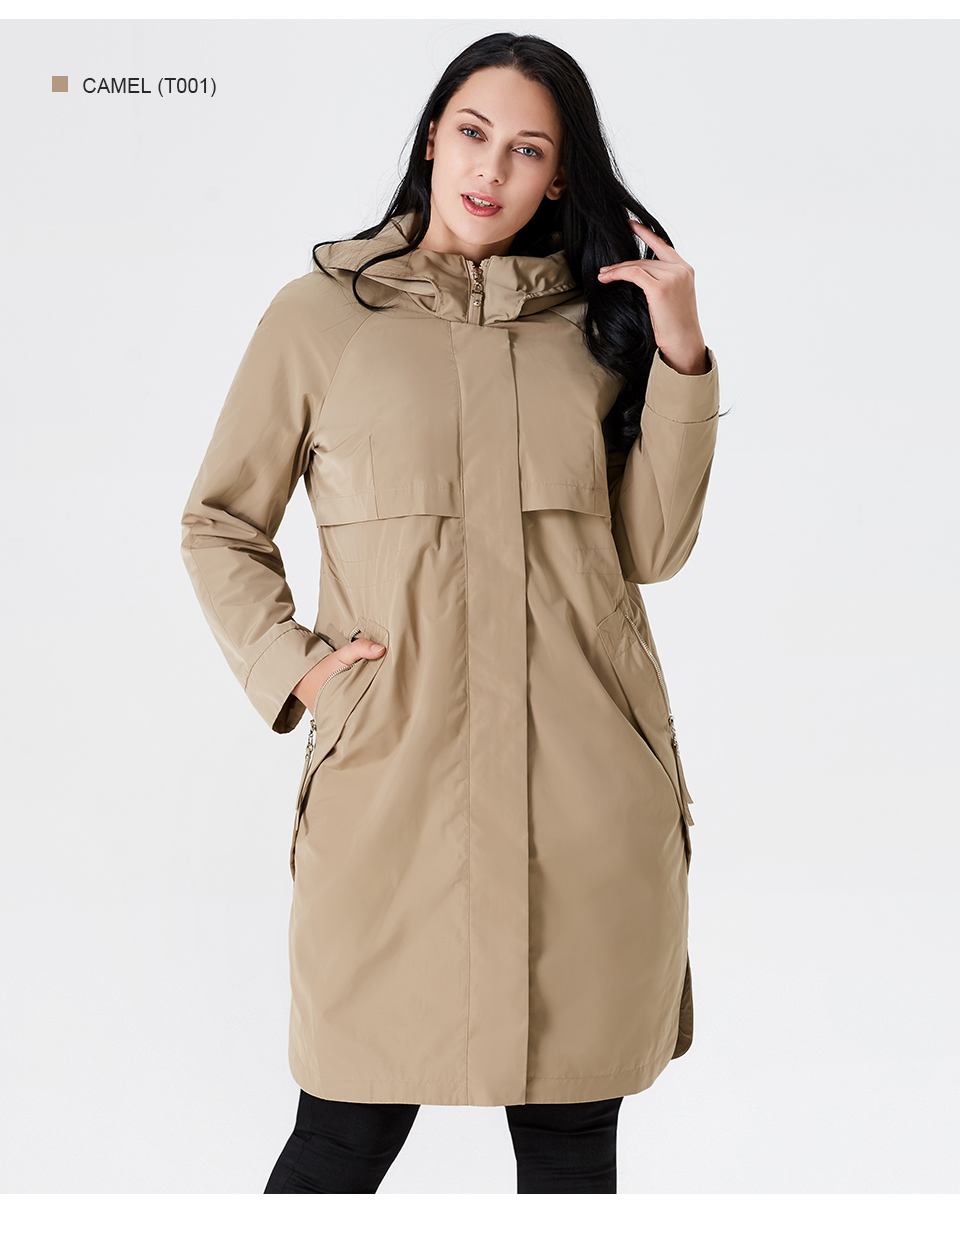 19 Trench Coat Spring And Autumn Women Causal coat Long Sleeve With Hood Solid color female moda muje High Quality new AS-9046 9